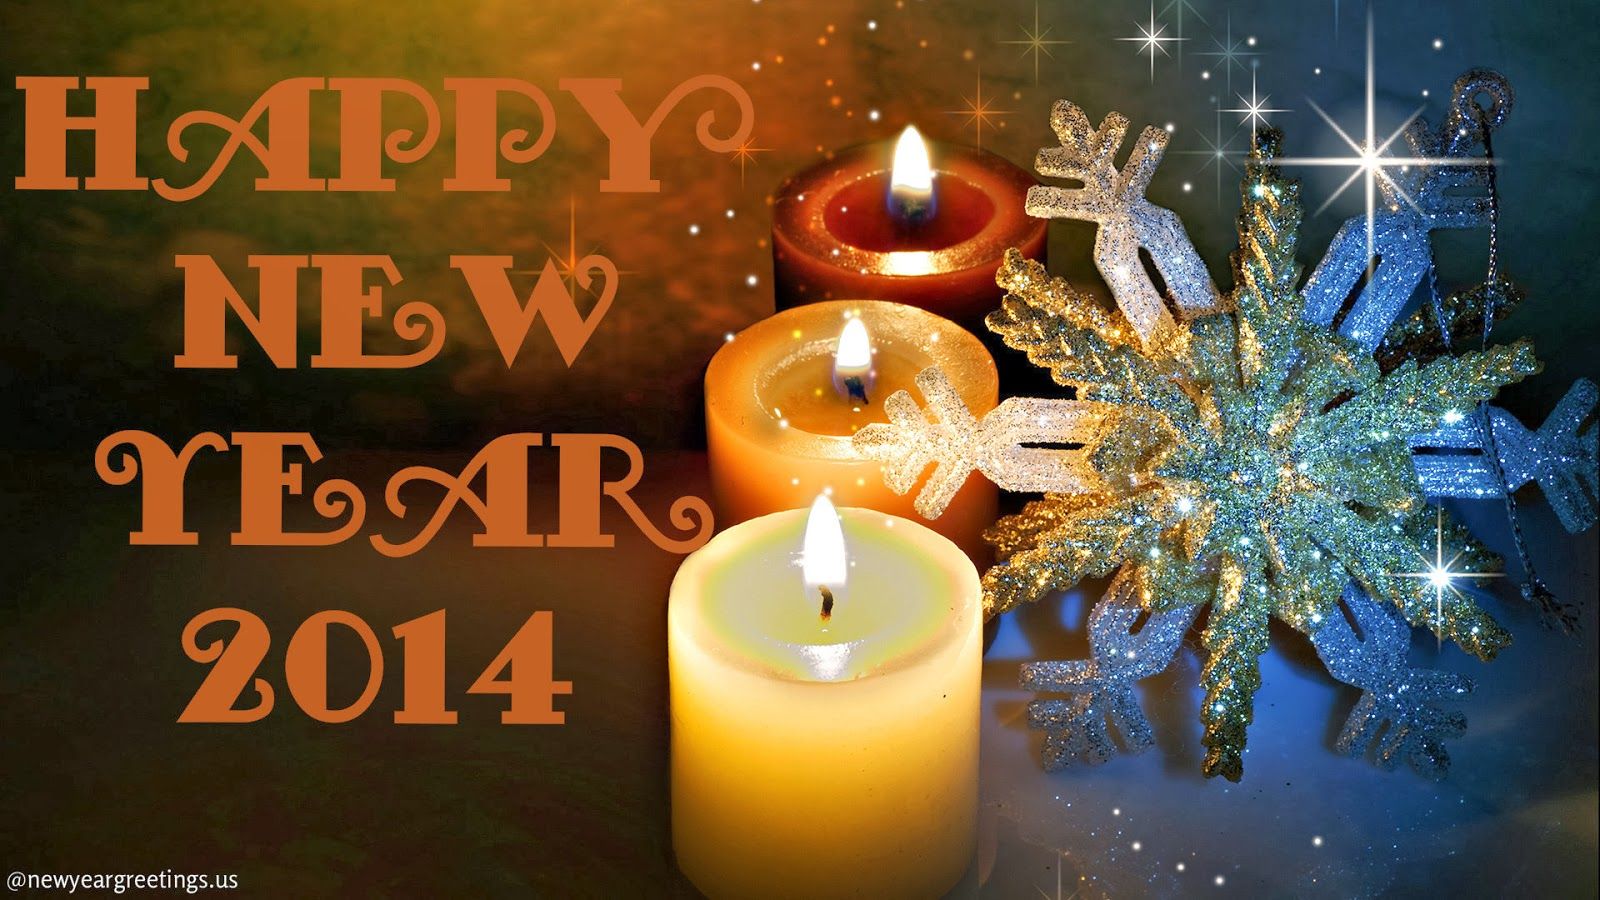 happy new year 2014 wallpapers download happy new year 2014 wallpapers 1600x900